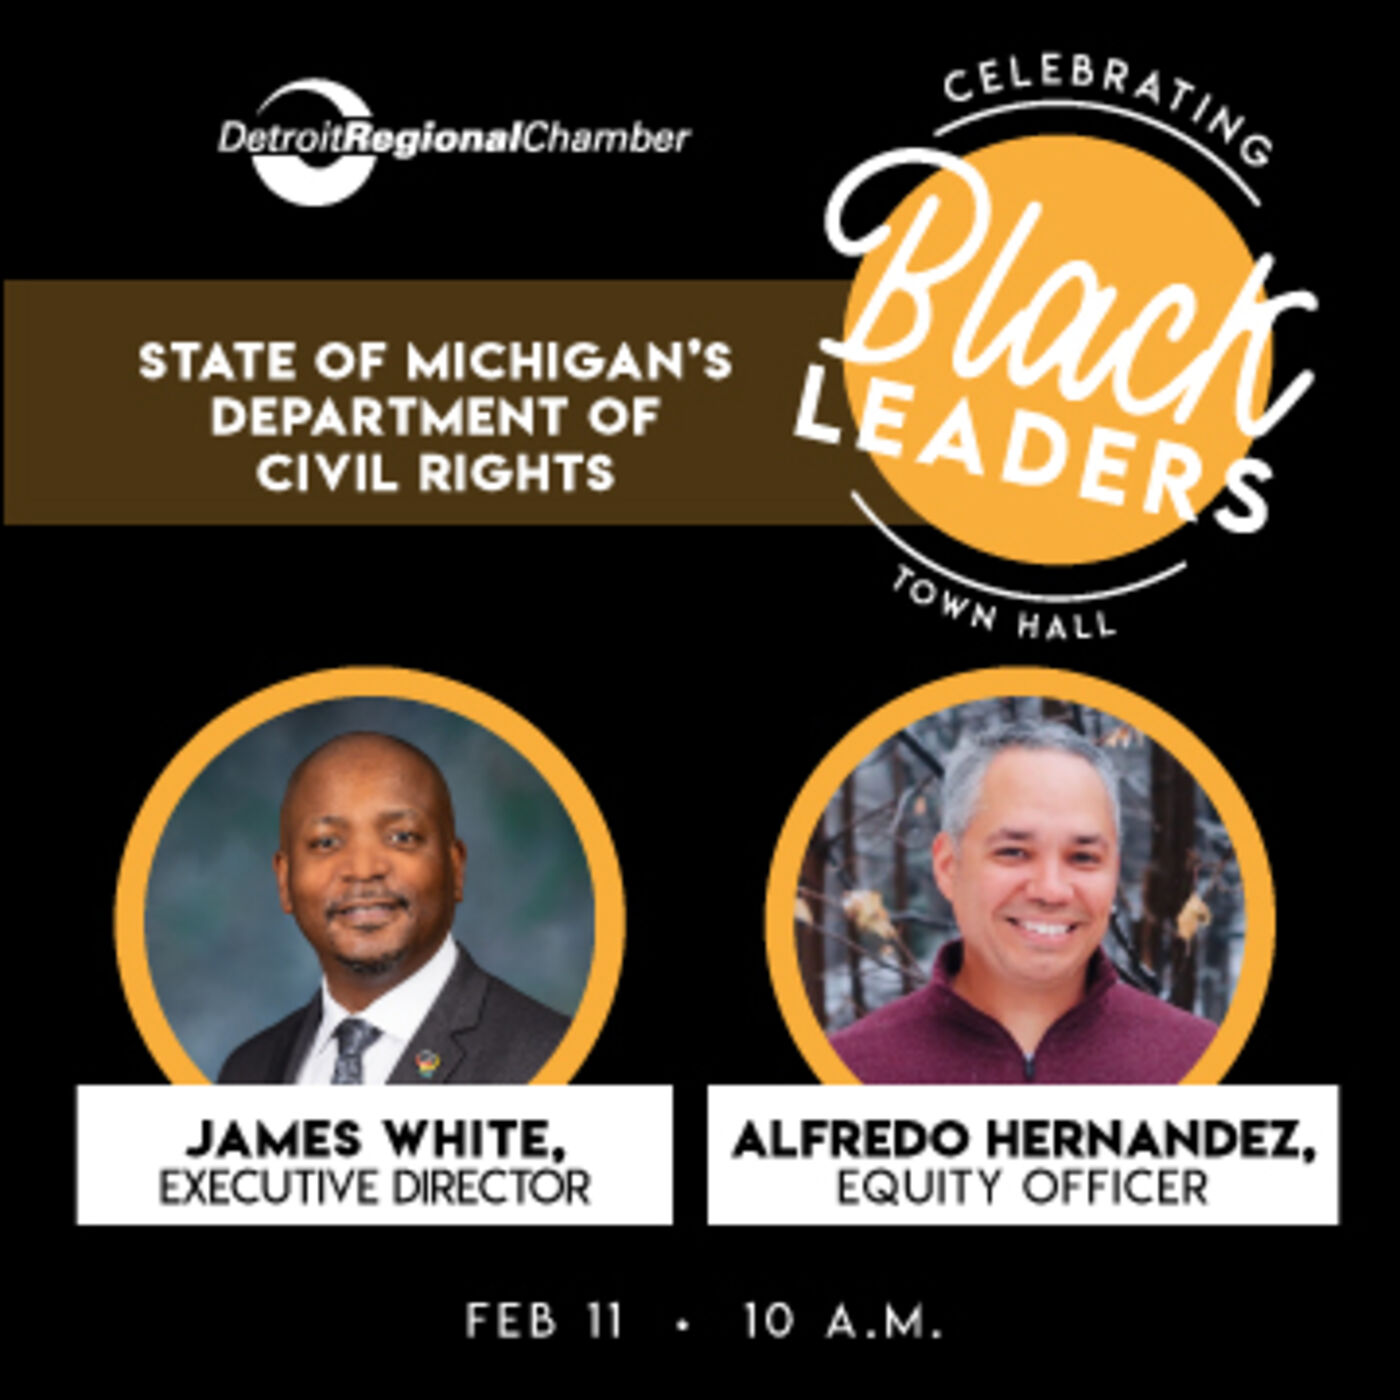 Celebrating Black Leaders: State of Michigan's Department of Civil Rights